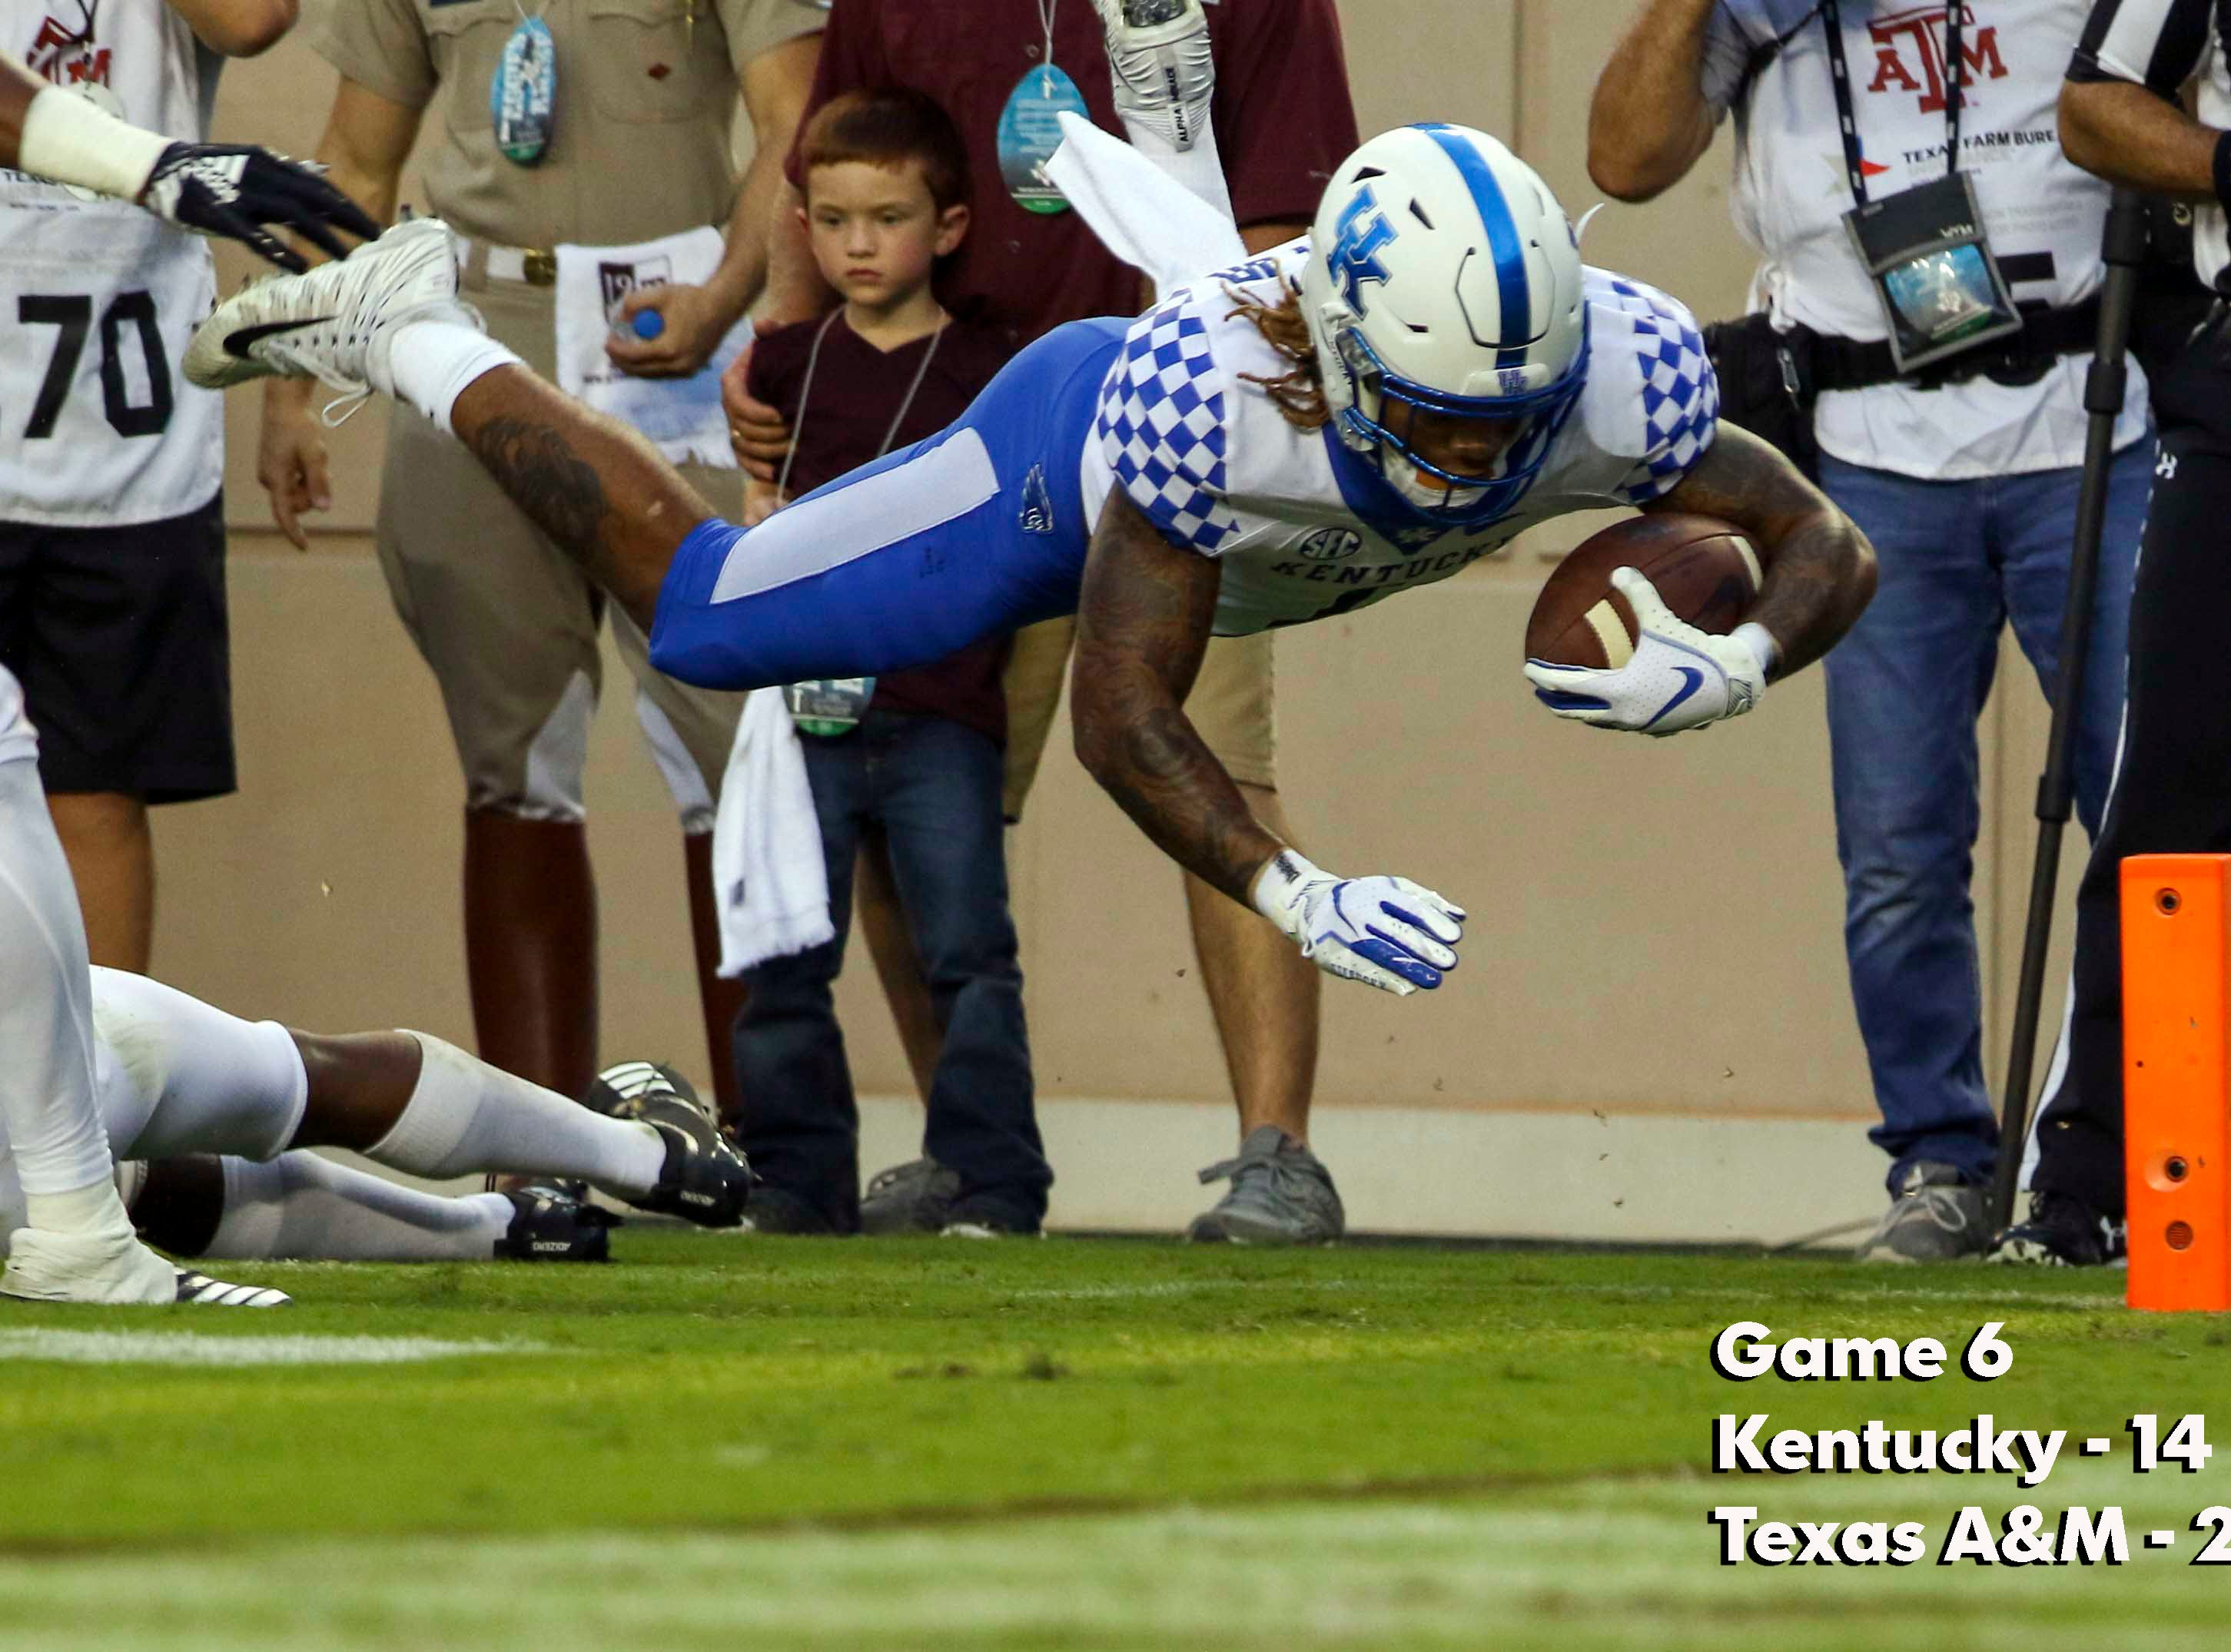 Oct 6, 2018; College Station, TX, USA; Kentucky Wildcats wide receiver Lynn Bowden Jr. (1) dives into the end zone for a touchdown during the first quarter against the Texas A&M Aggies at Kyle Field. Mandatory Credit: John Glaser-USA TODAY Sports